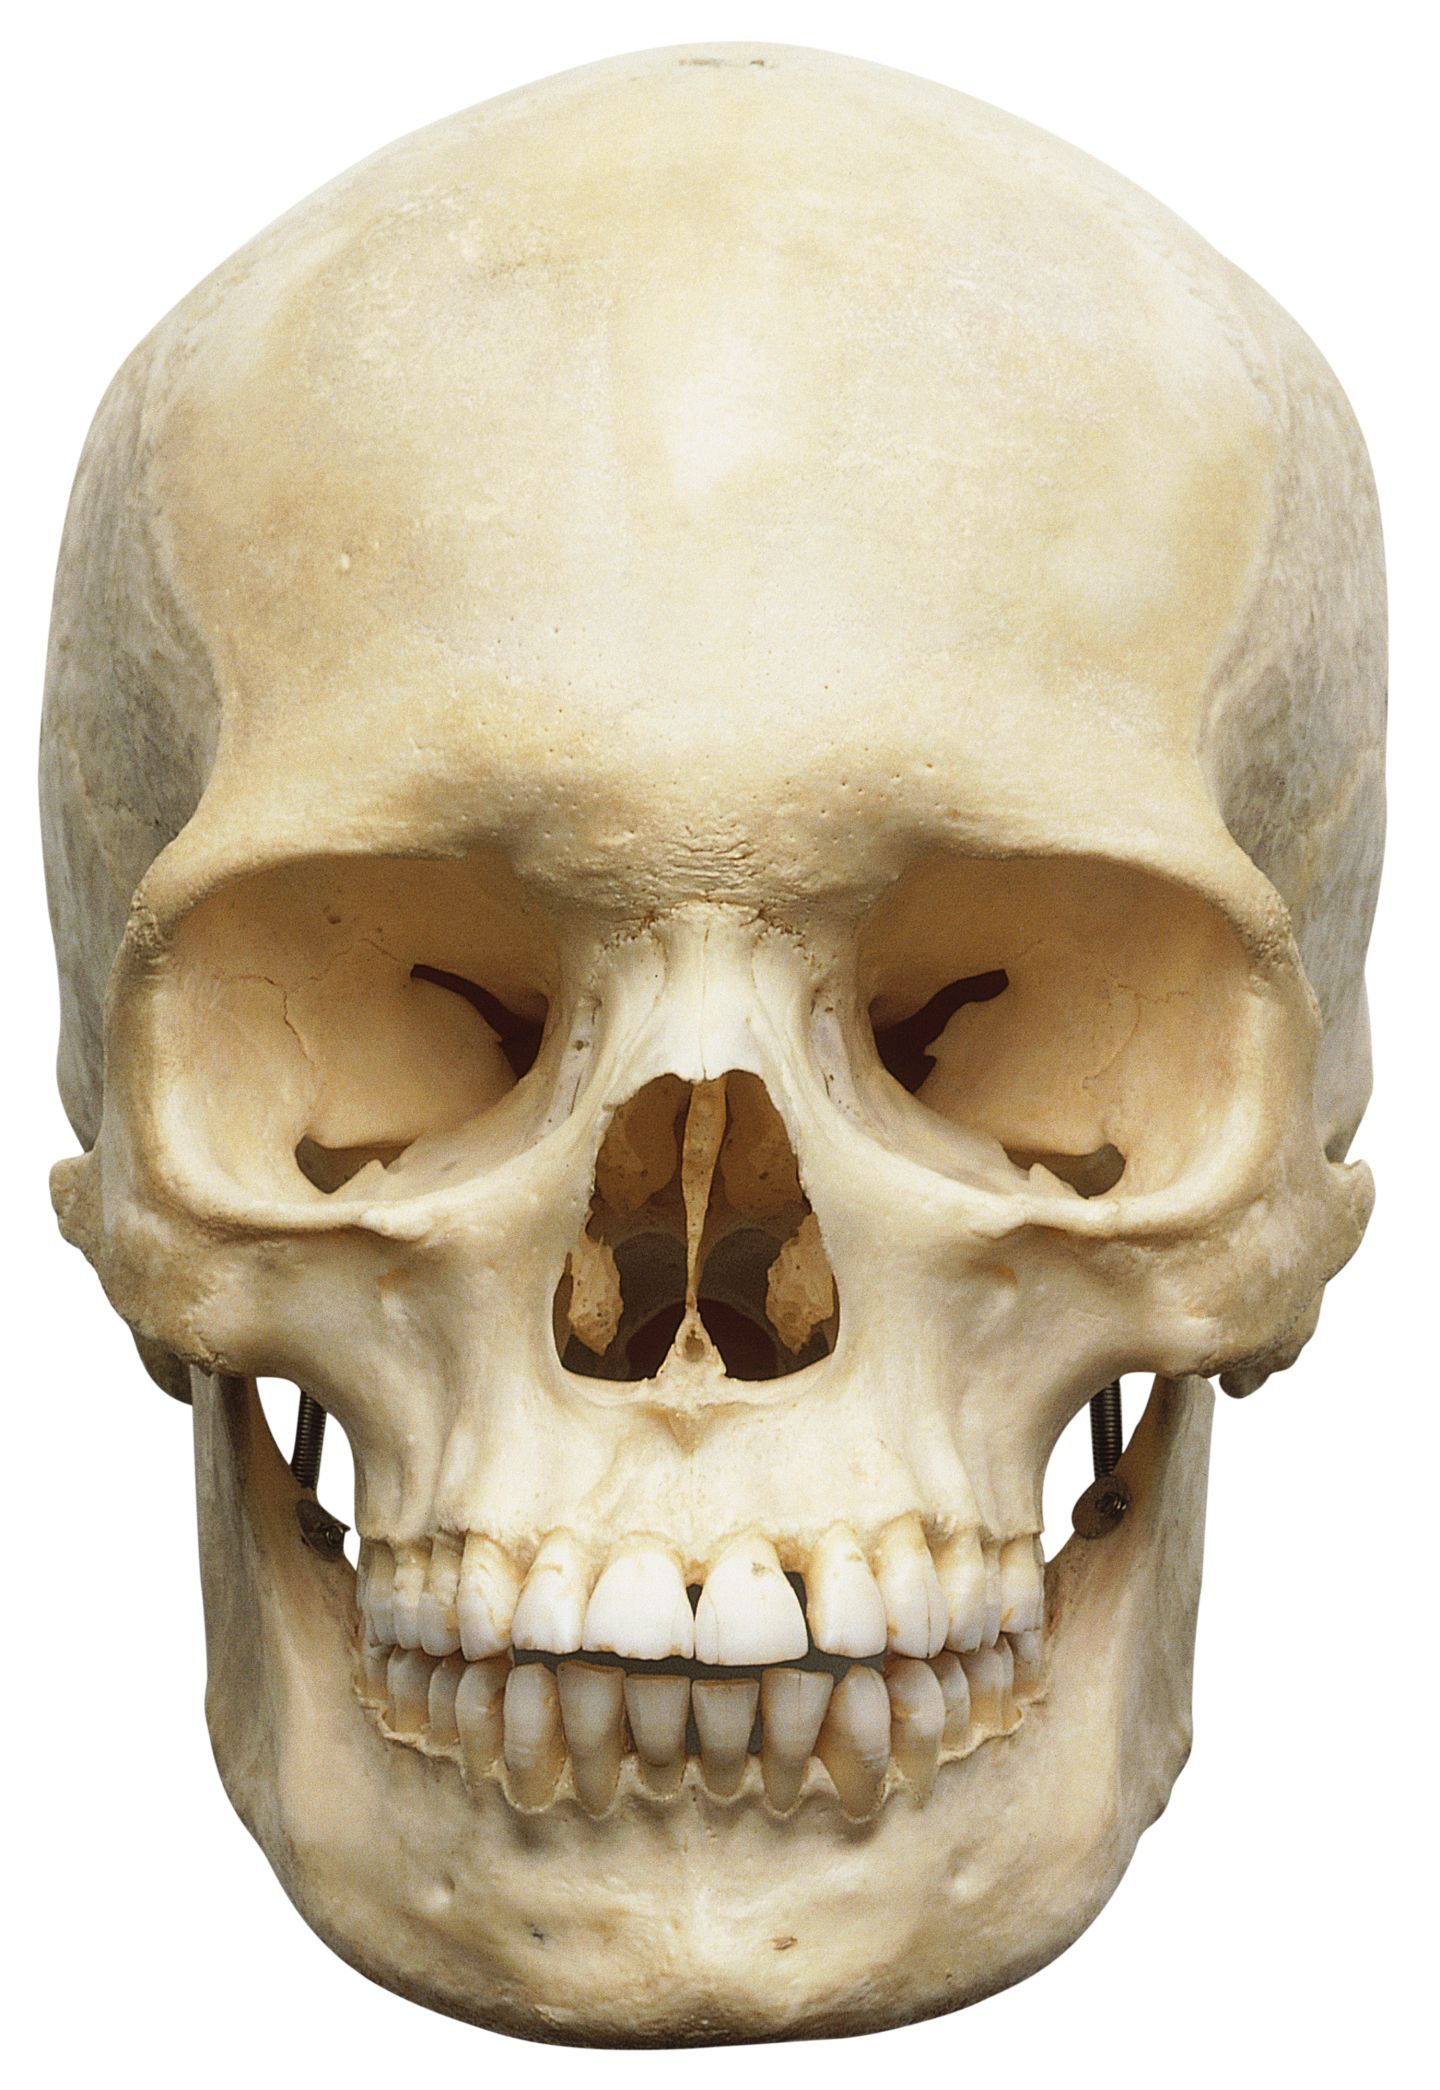 Human Skull Anatomy Bones In Human Skull Dk Find Out